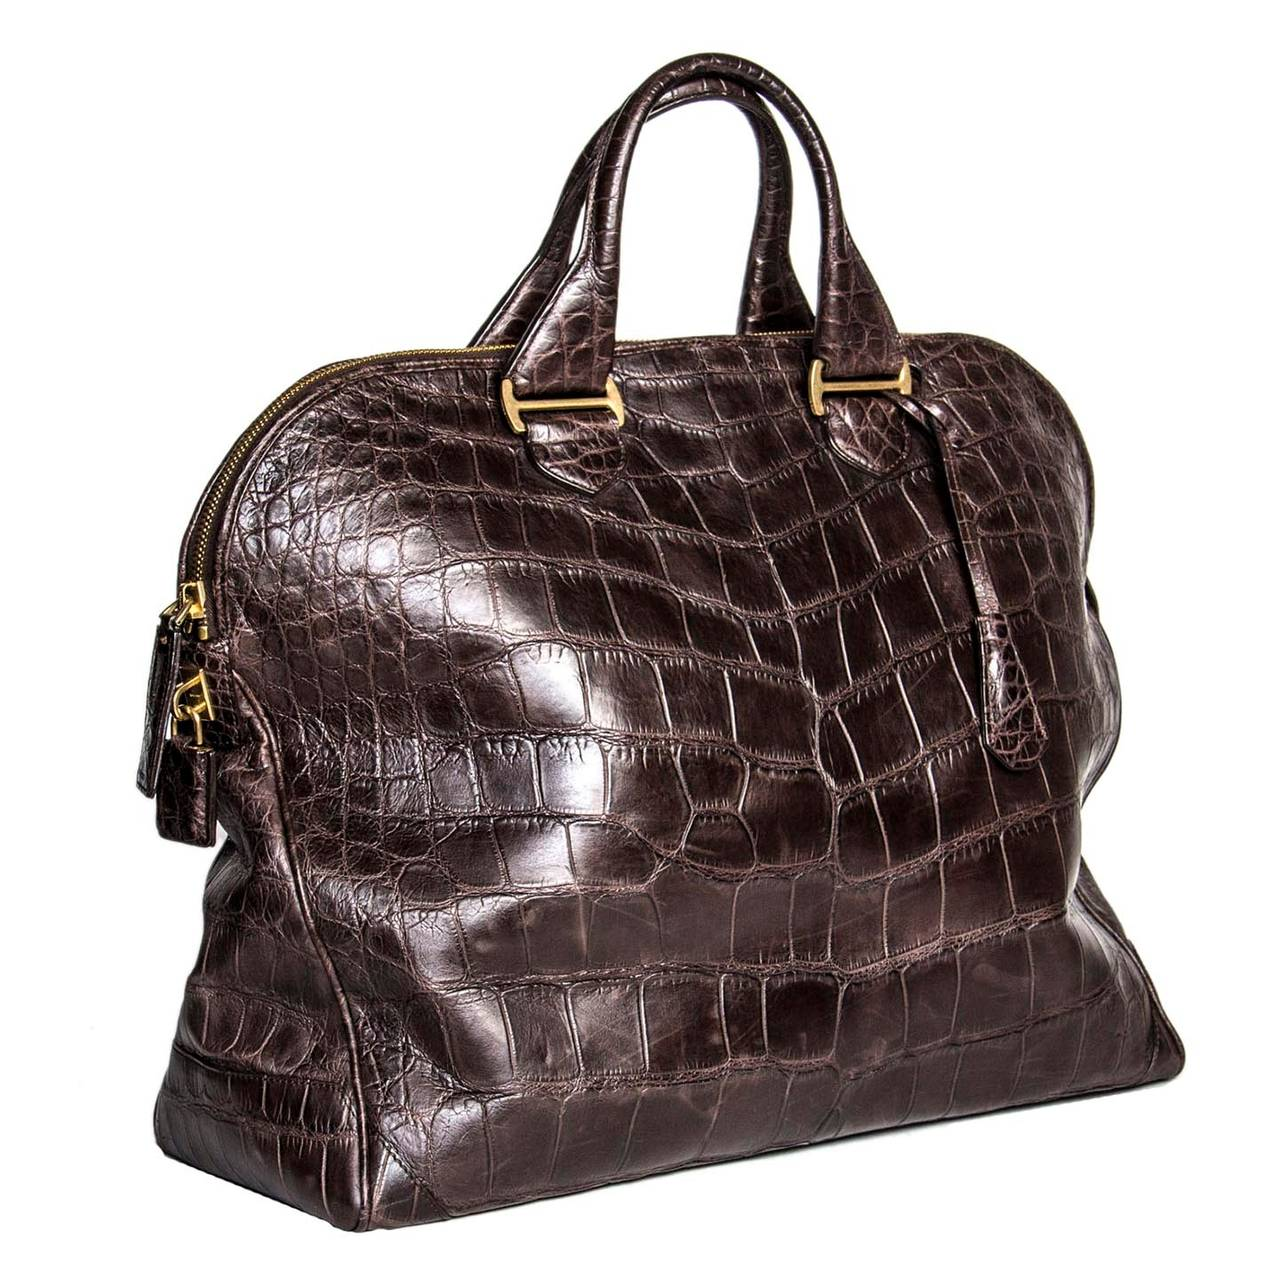 "Beautiful chocolate brown crocodile oversized bag with brass chunky zipper and details. The bag also has matching brass and crocodile lock and key. Bought in Zurich at the opening of the Tom Ford Store. Size : H 19"" L 23"" W 8.5"""